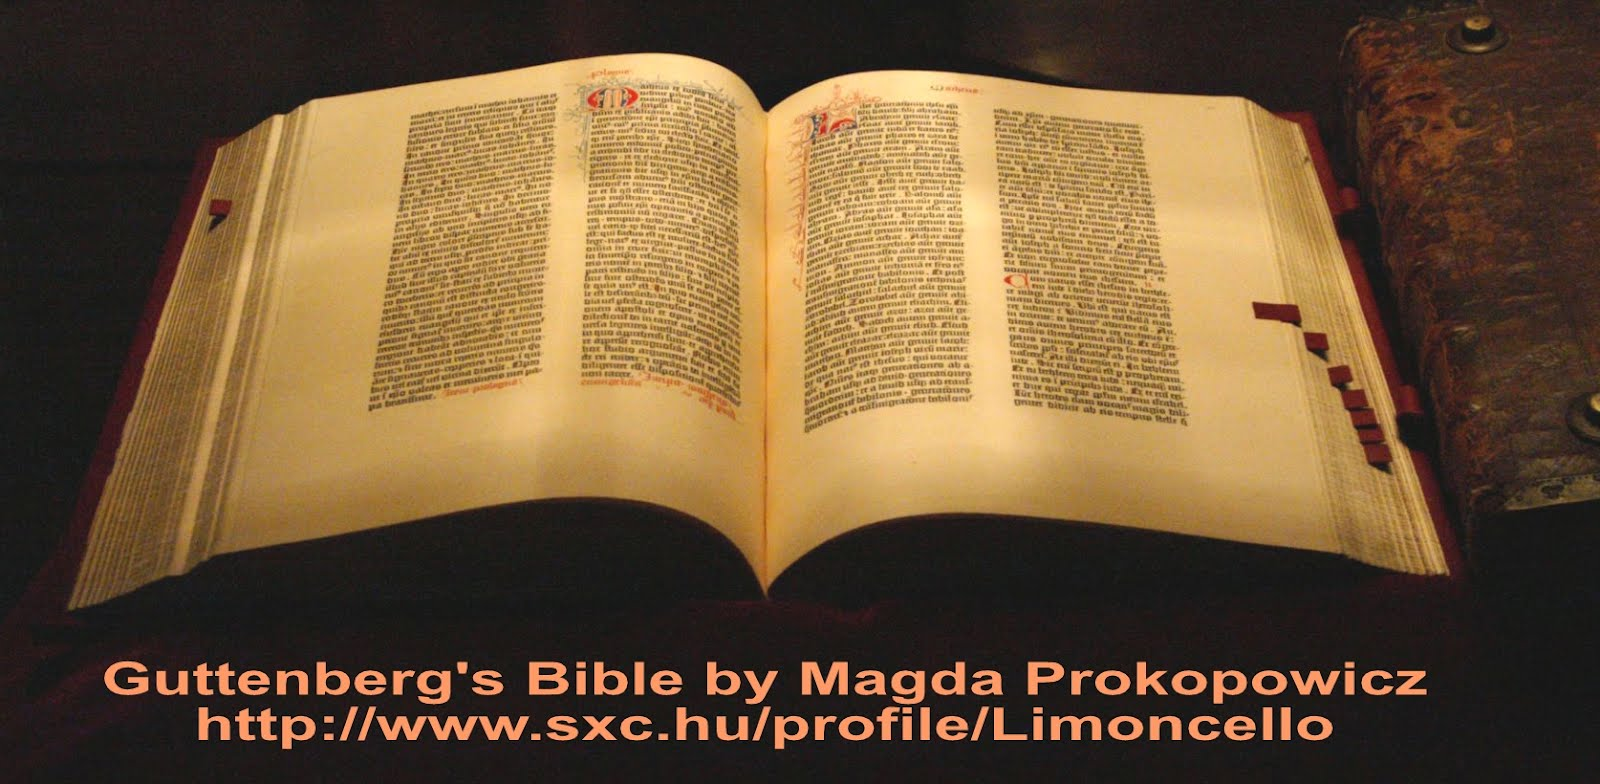 The Bible is the most published book in the world 77